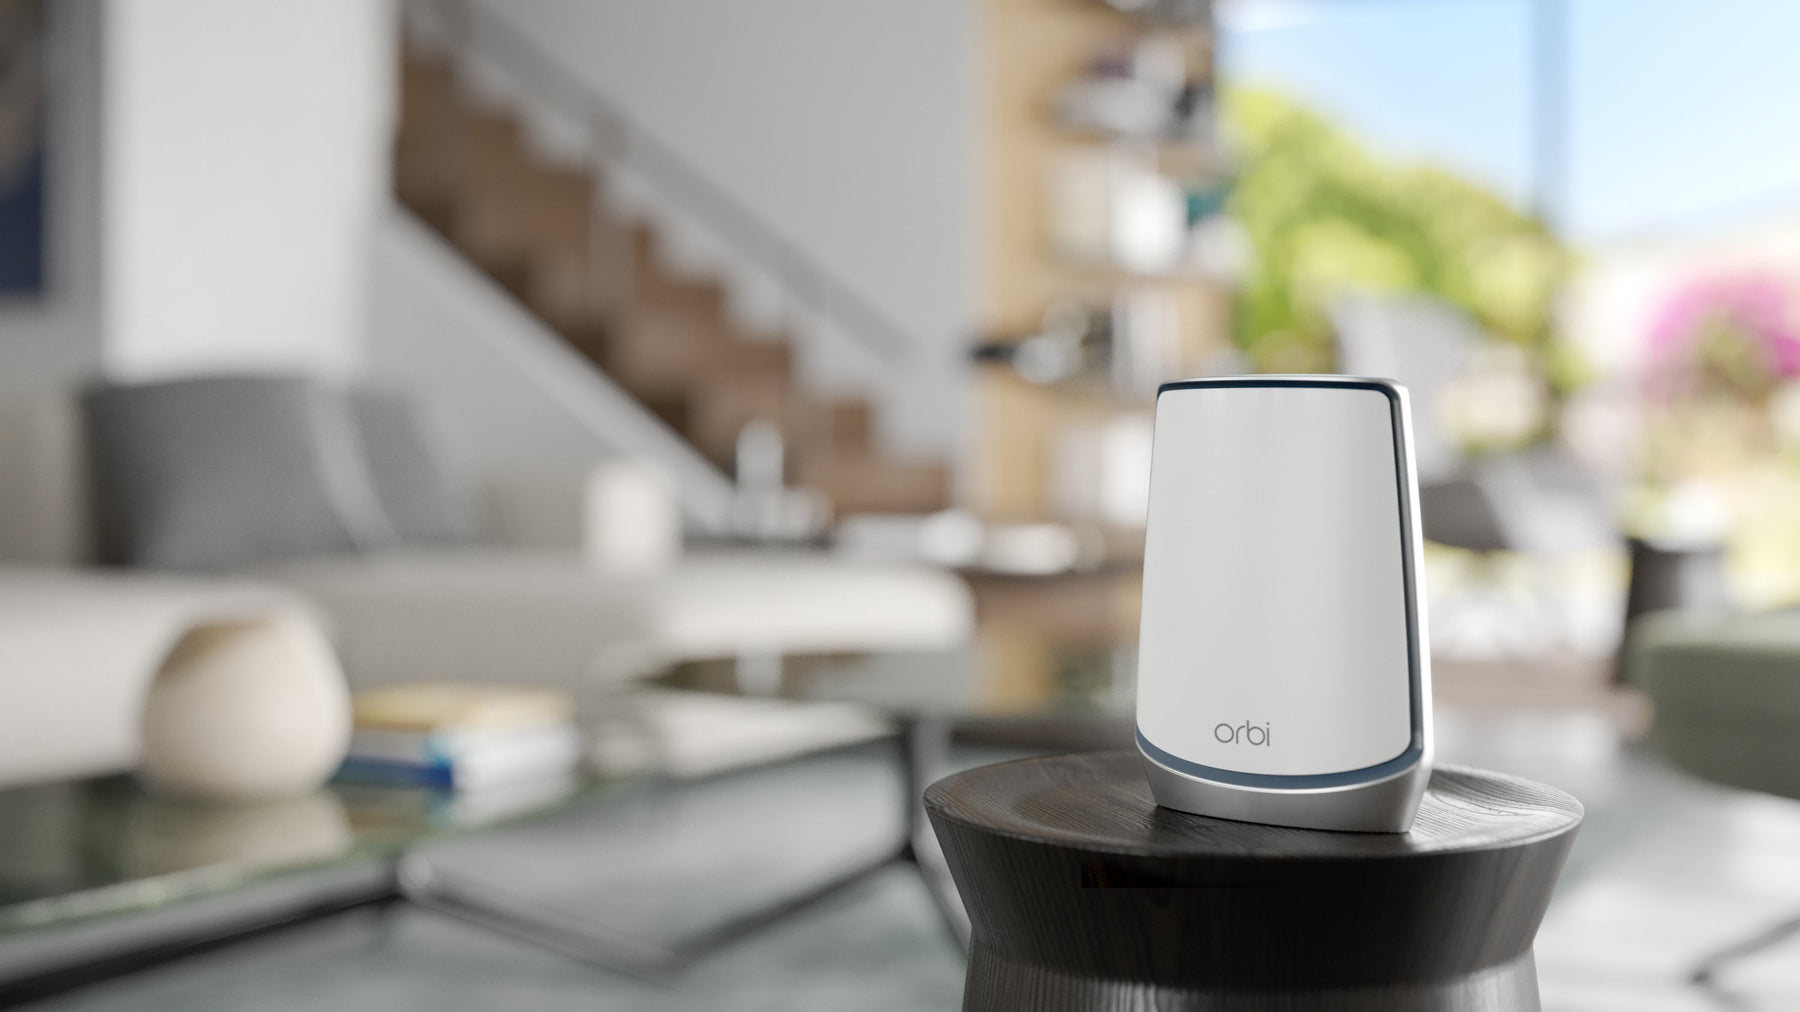 Netgear launches new Wi-Fi 6 Orbi mesh networking system at Sitex 2019